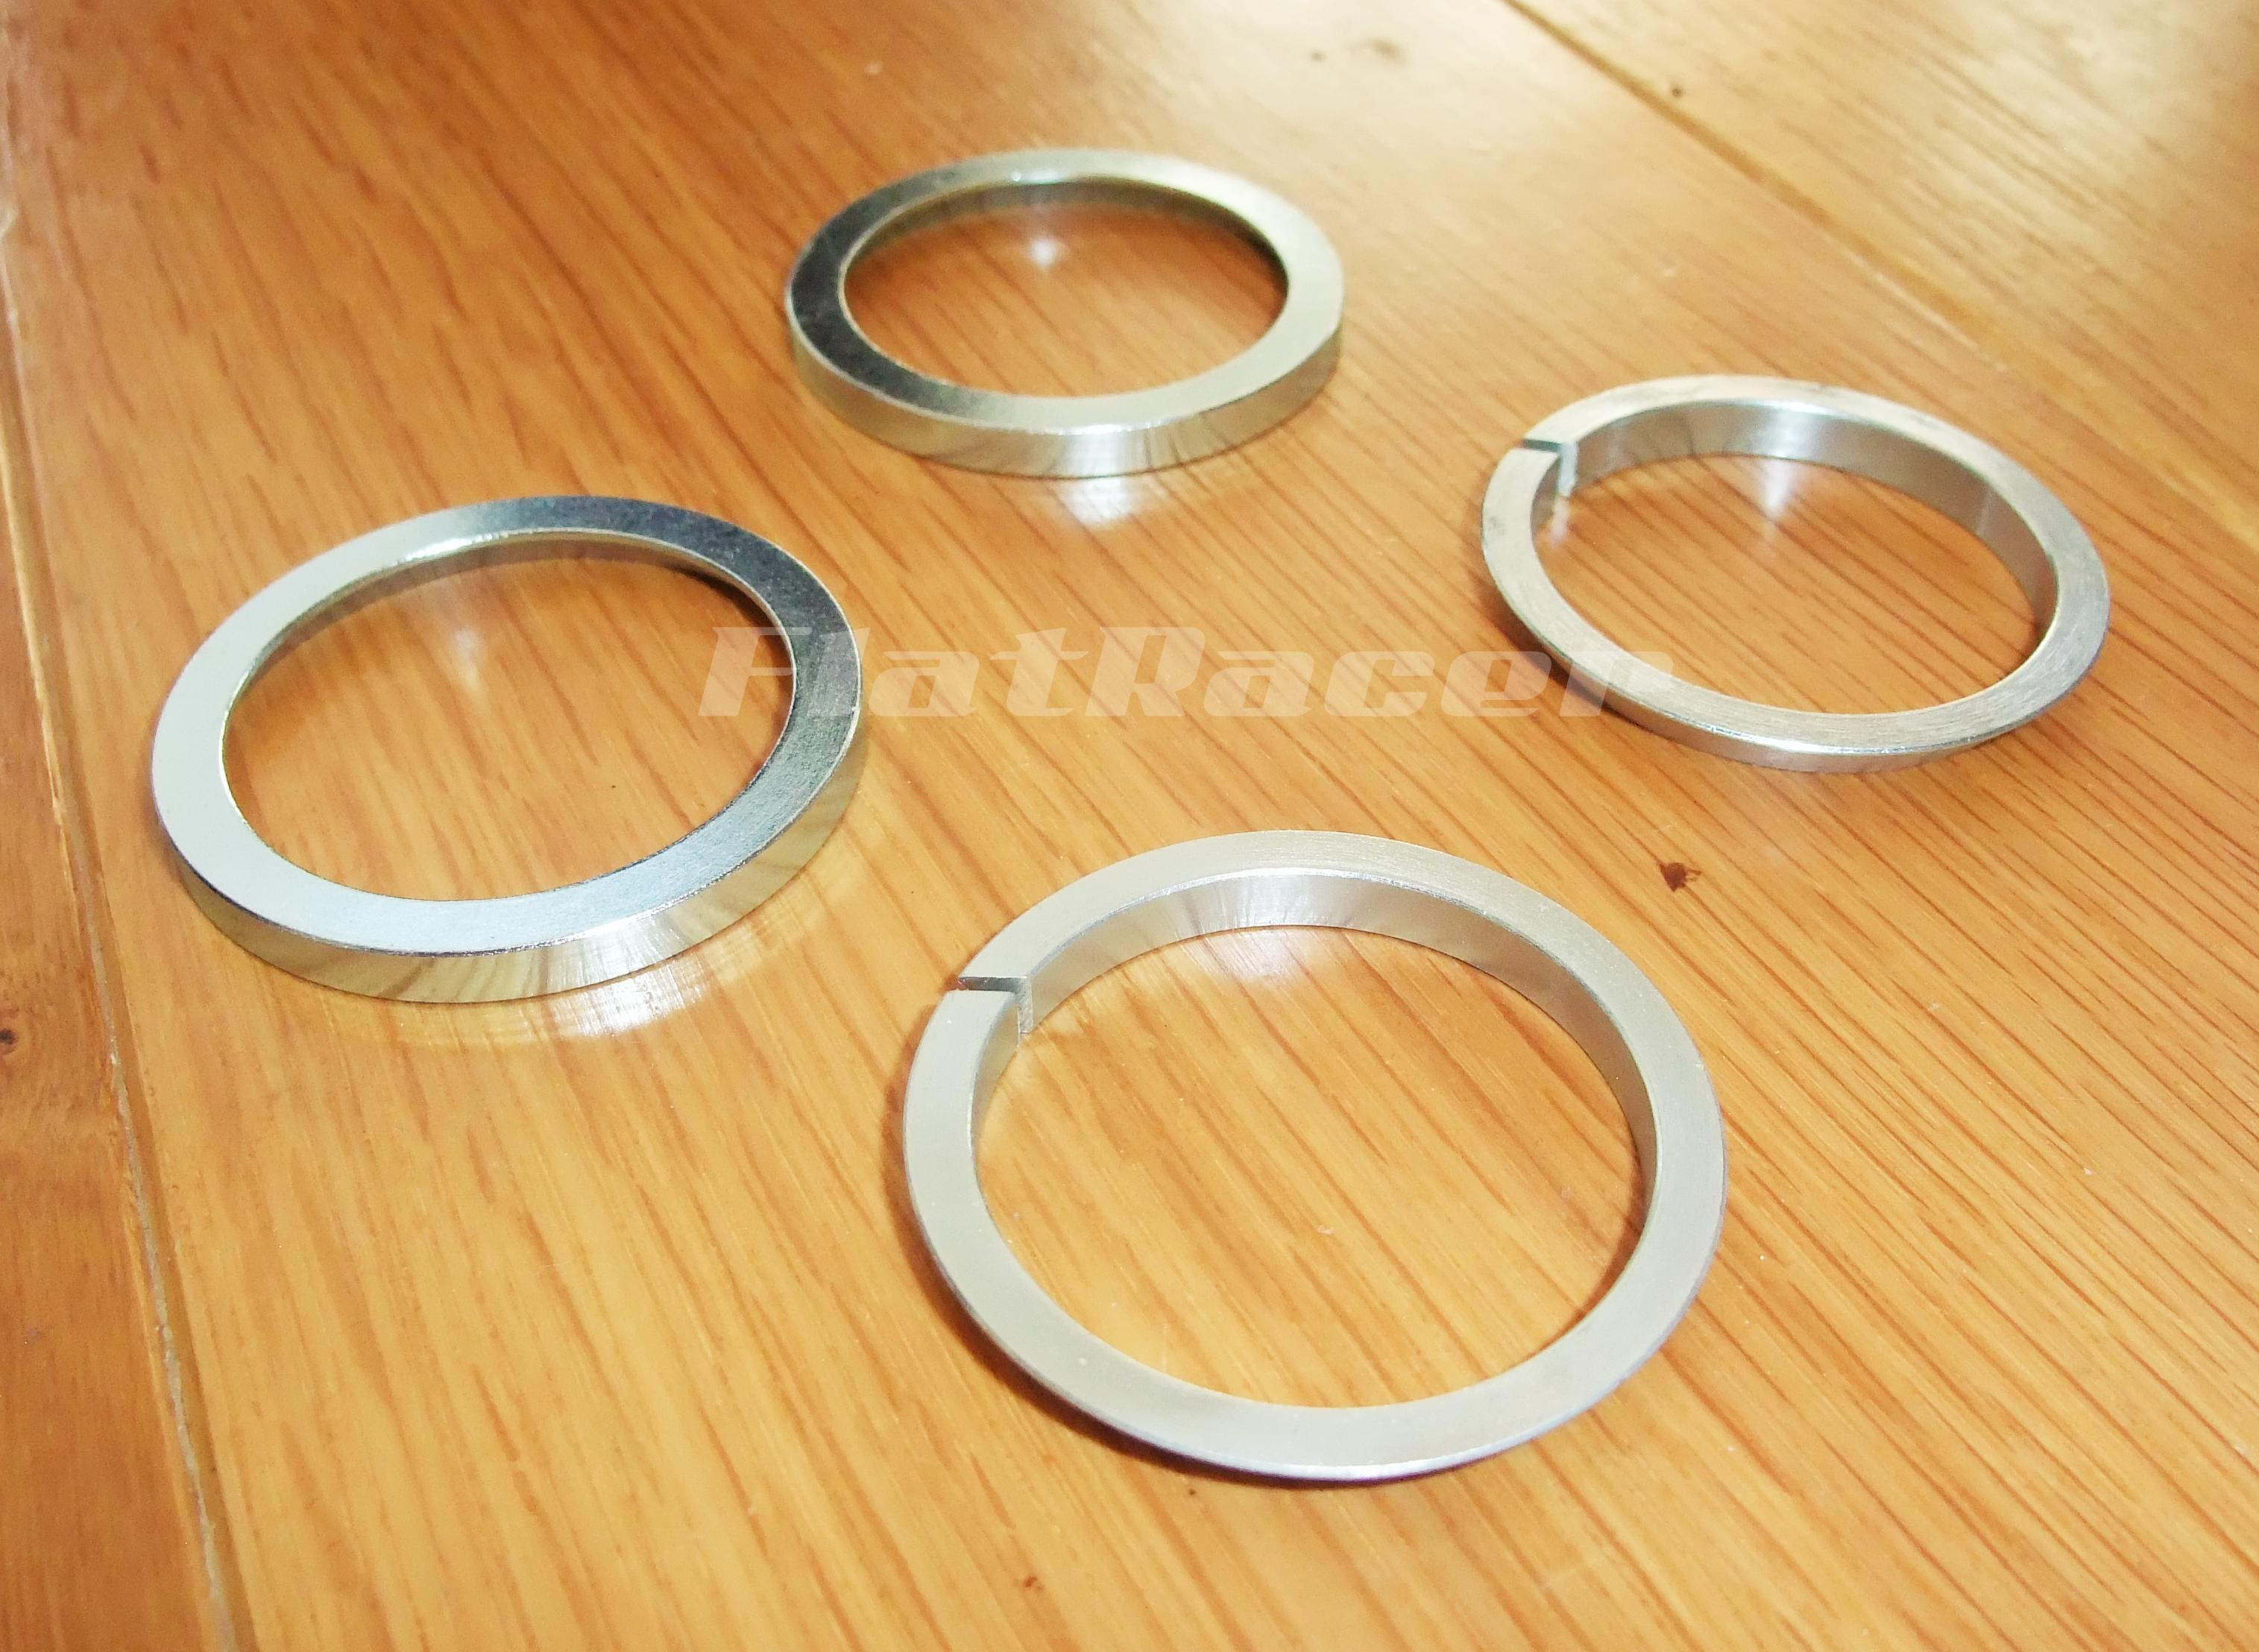 BMW R2v Boxer exhaust manifold sealing rings (set of 4)